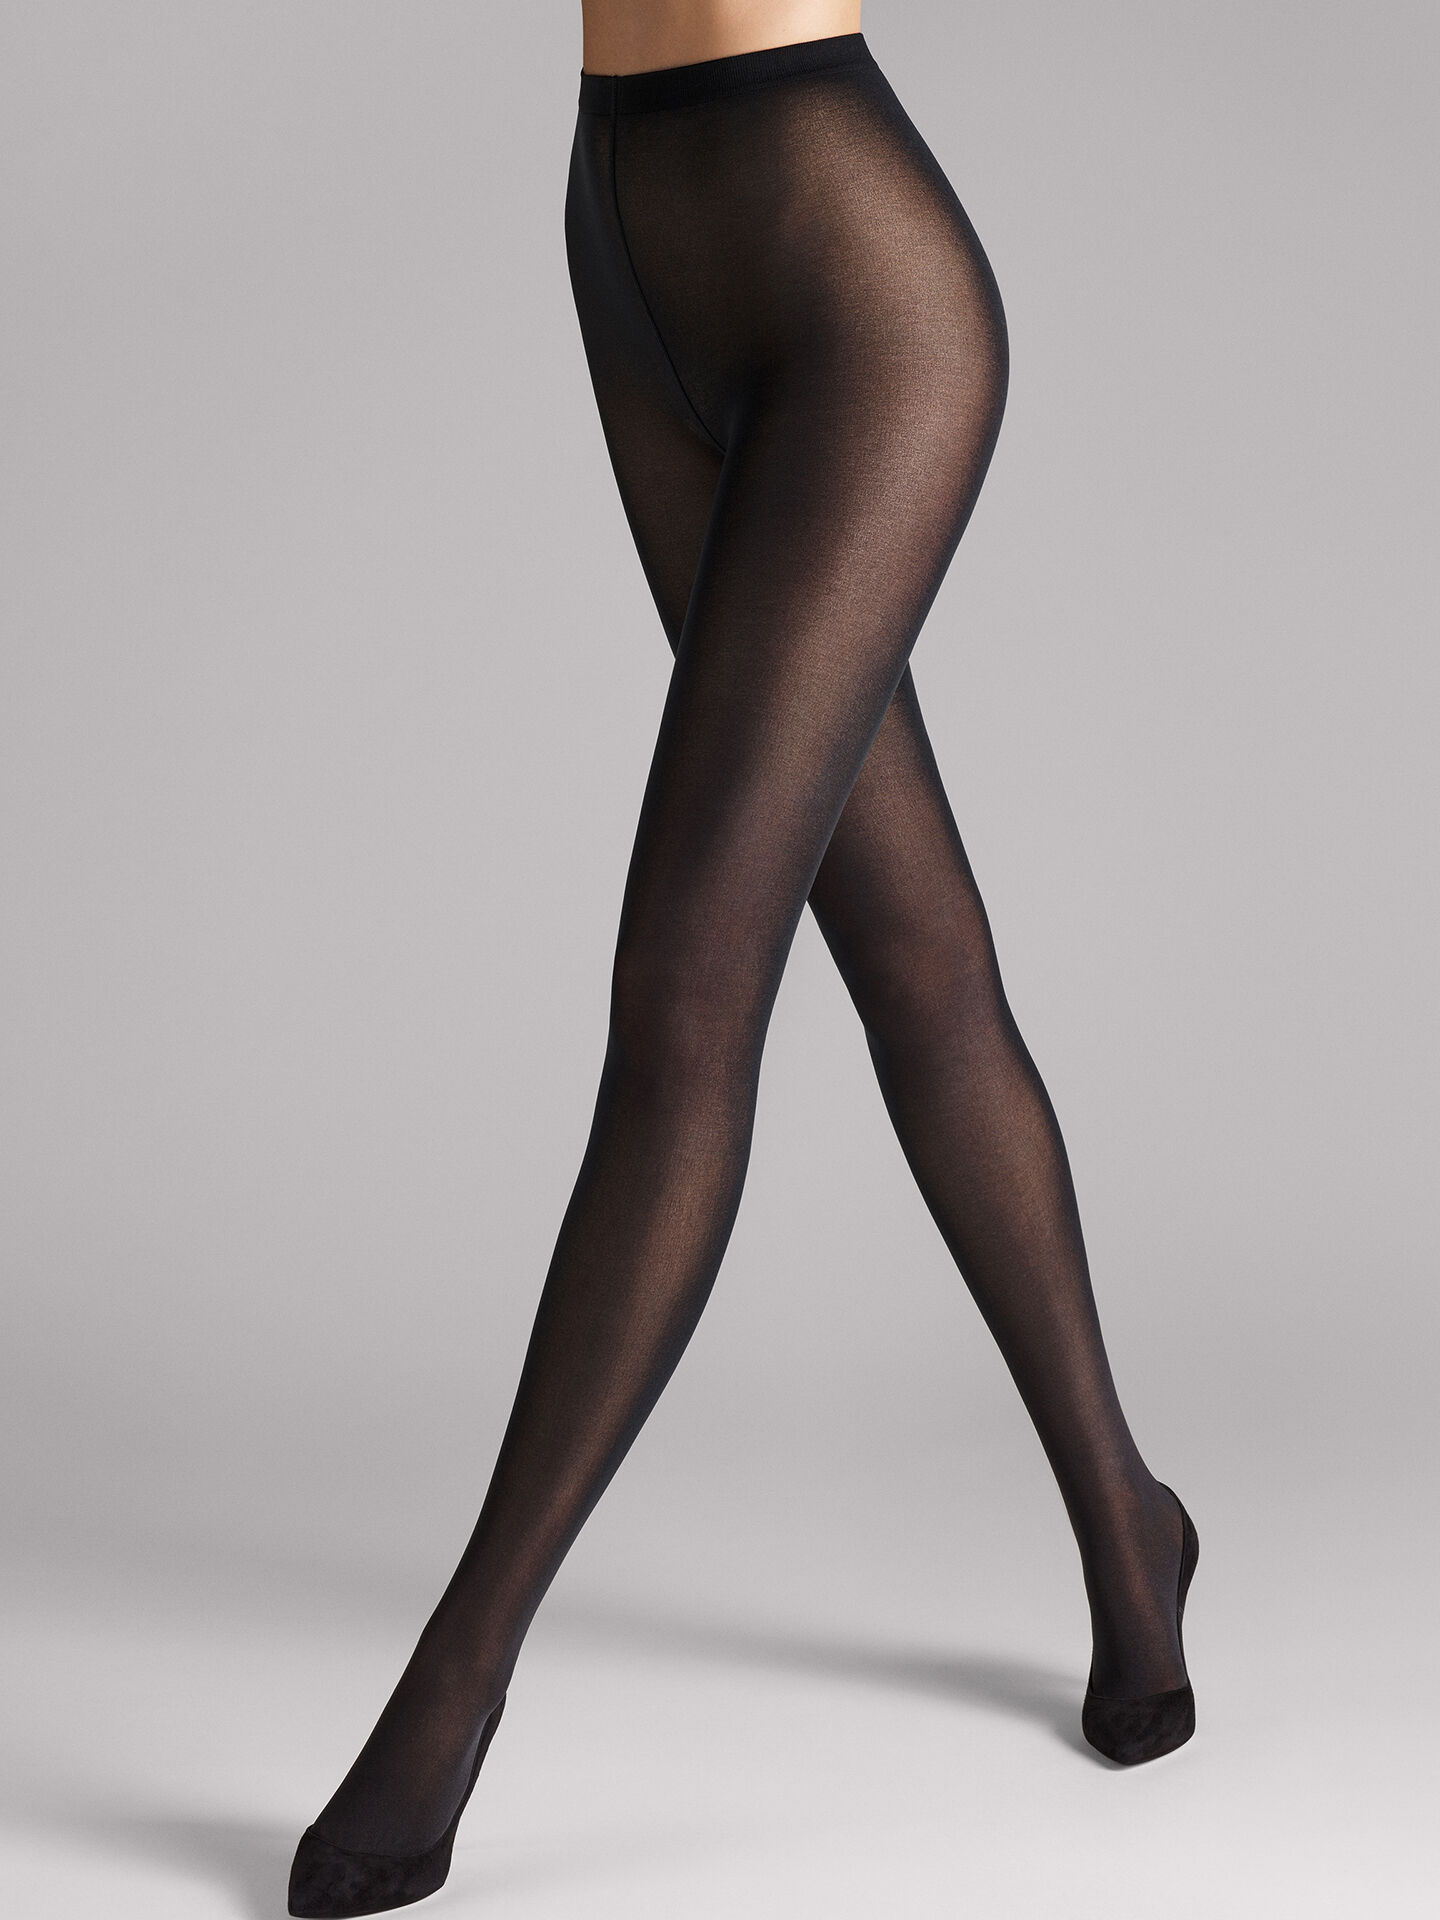 Fake Buy Cheap Latest Wolford Velvet de Luxe 50 Tights Cheap Sale Many Kinds Of For Nice Huge Surprise Cheap Price cmoG8JRkkq